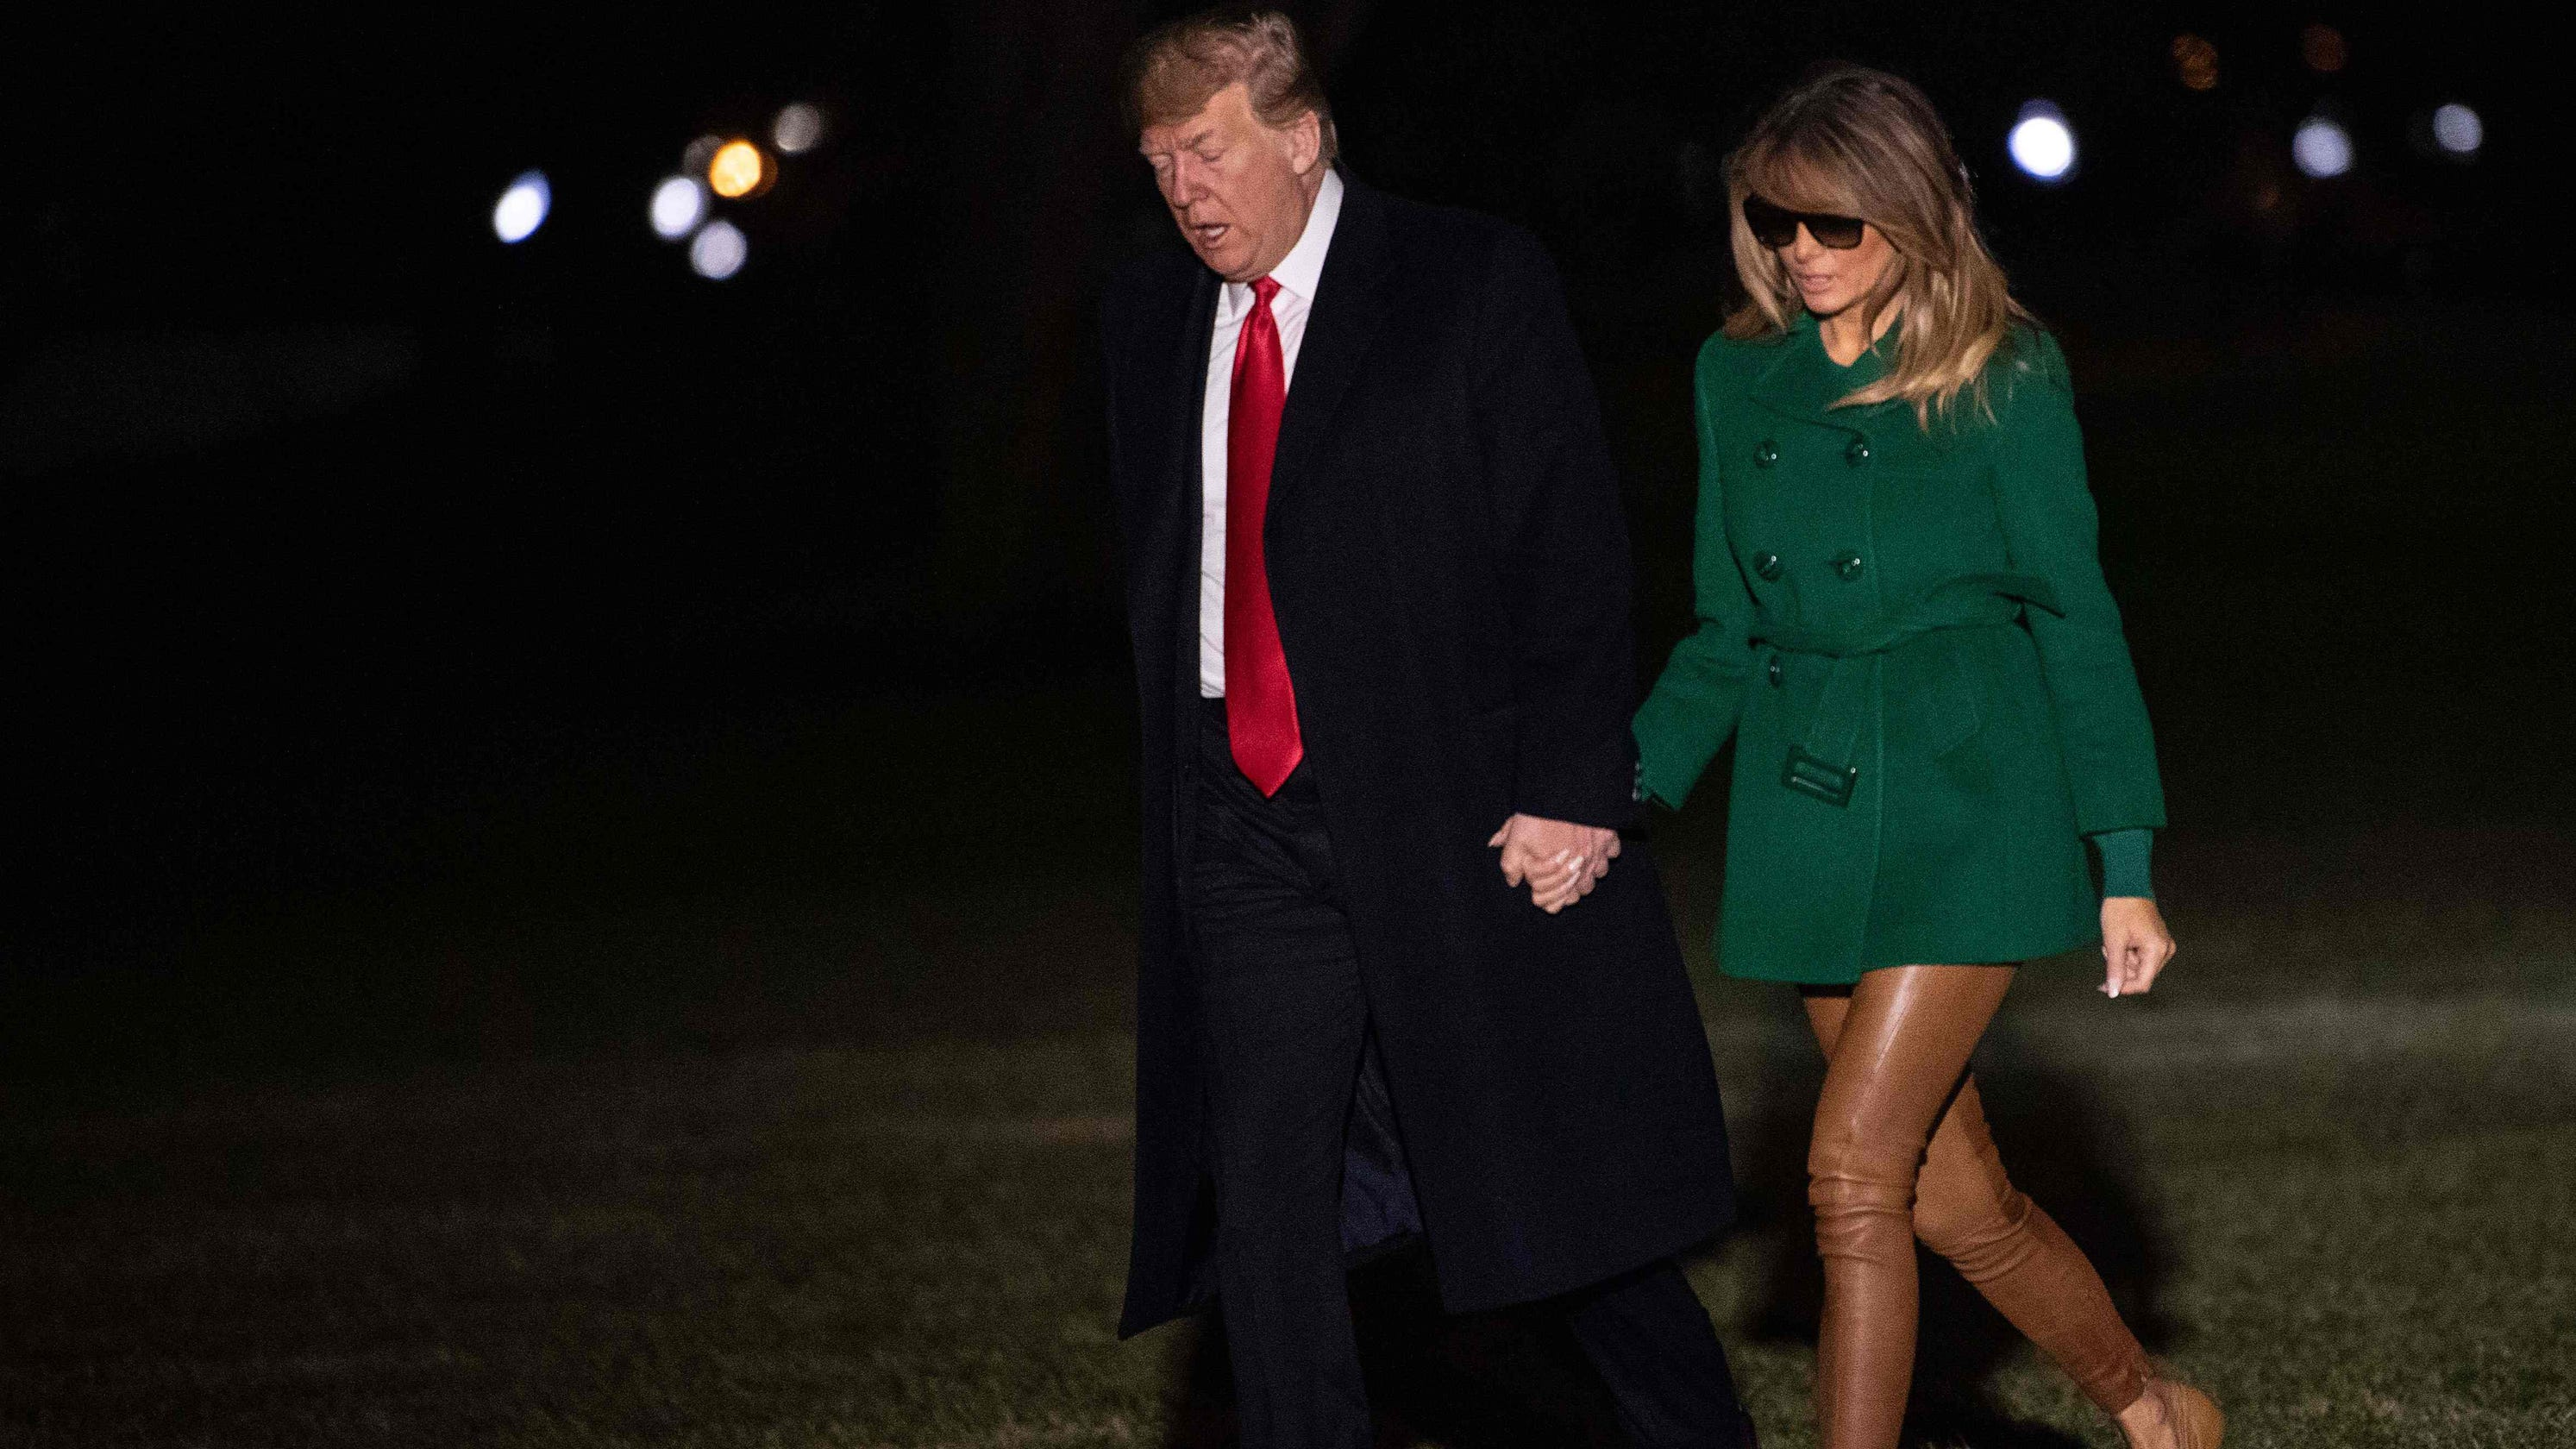 a98786760ae Melania Trump s nude pants made Twitter think she went without pants